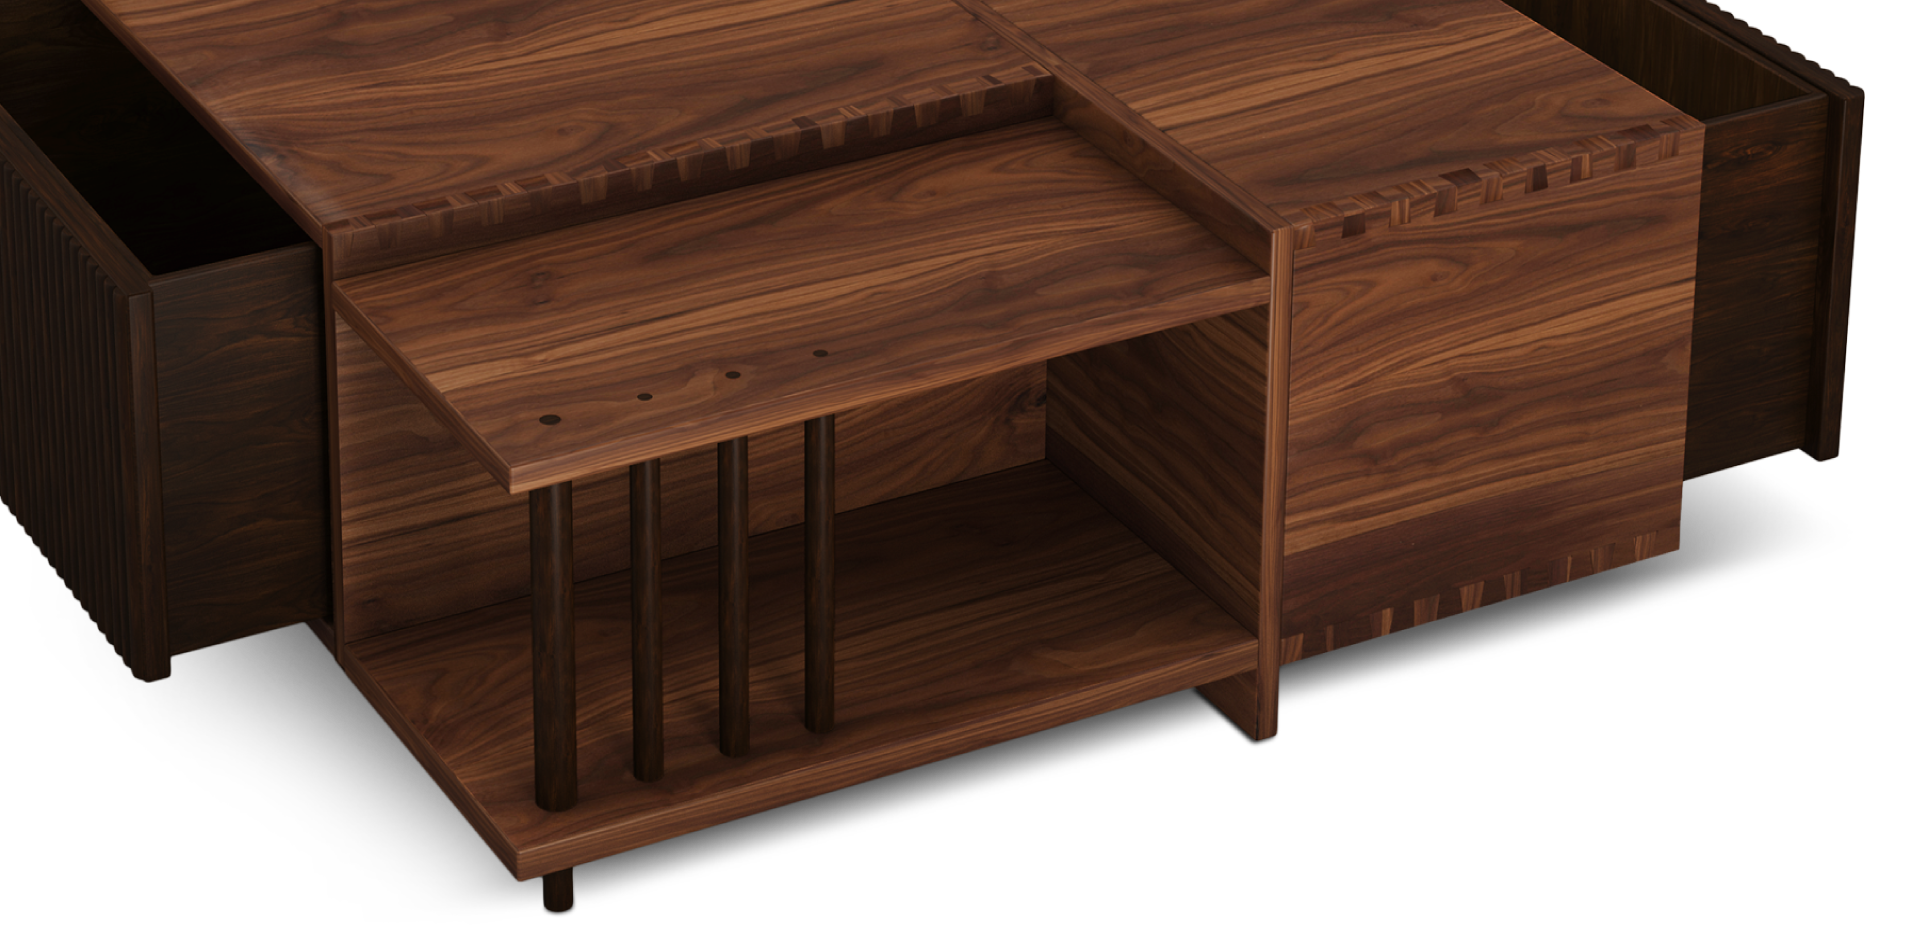 Douglas Center Table Meticulously Handcrafted In Walnut Wood